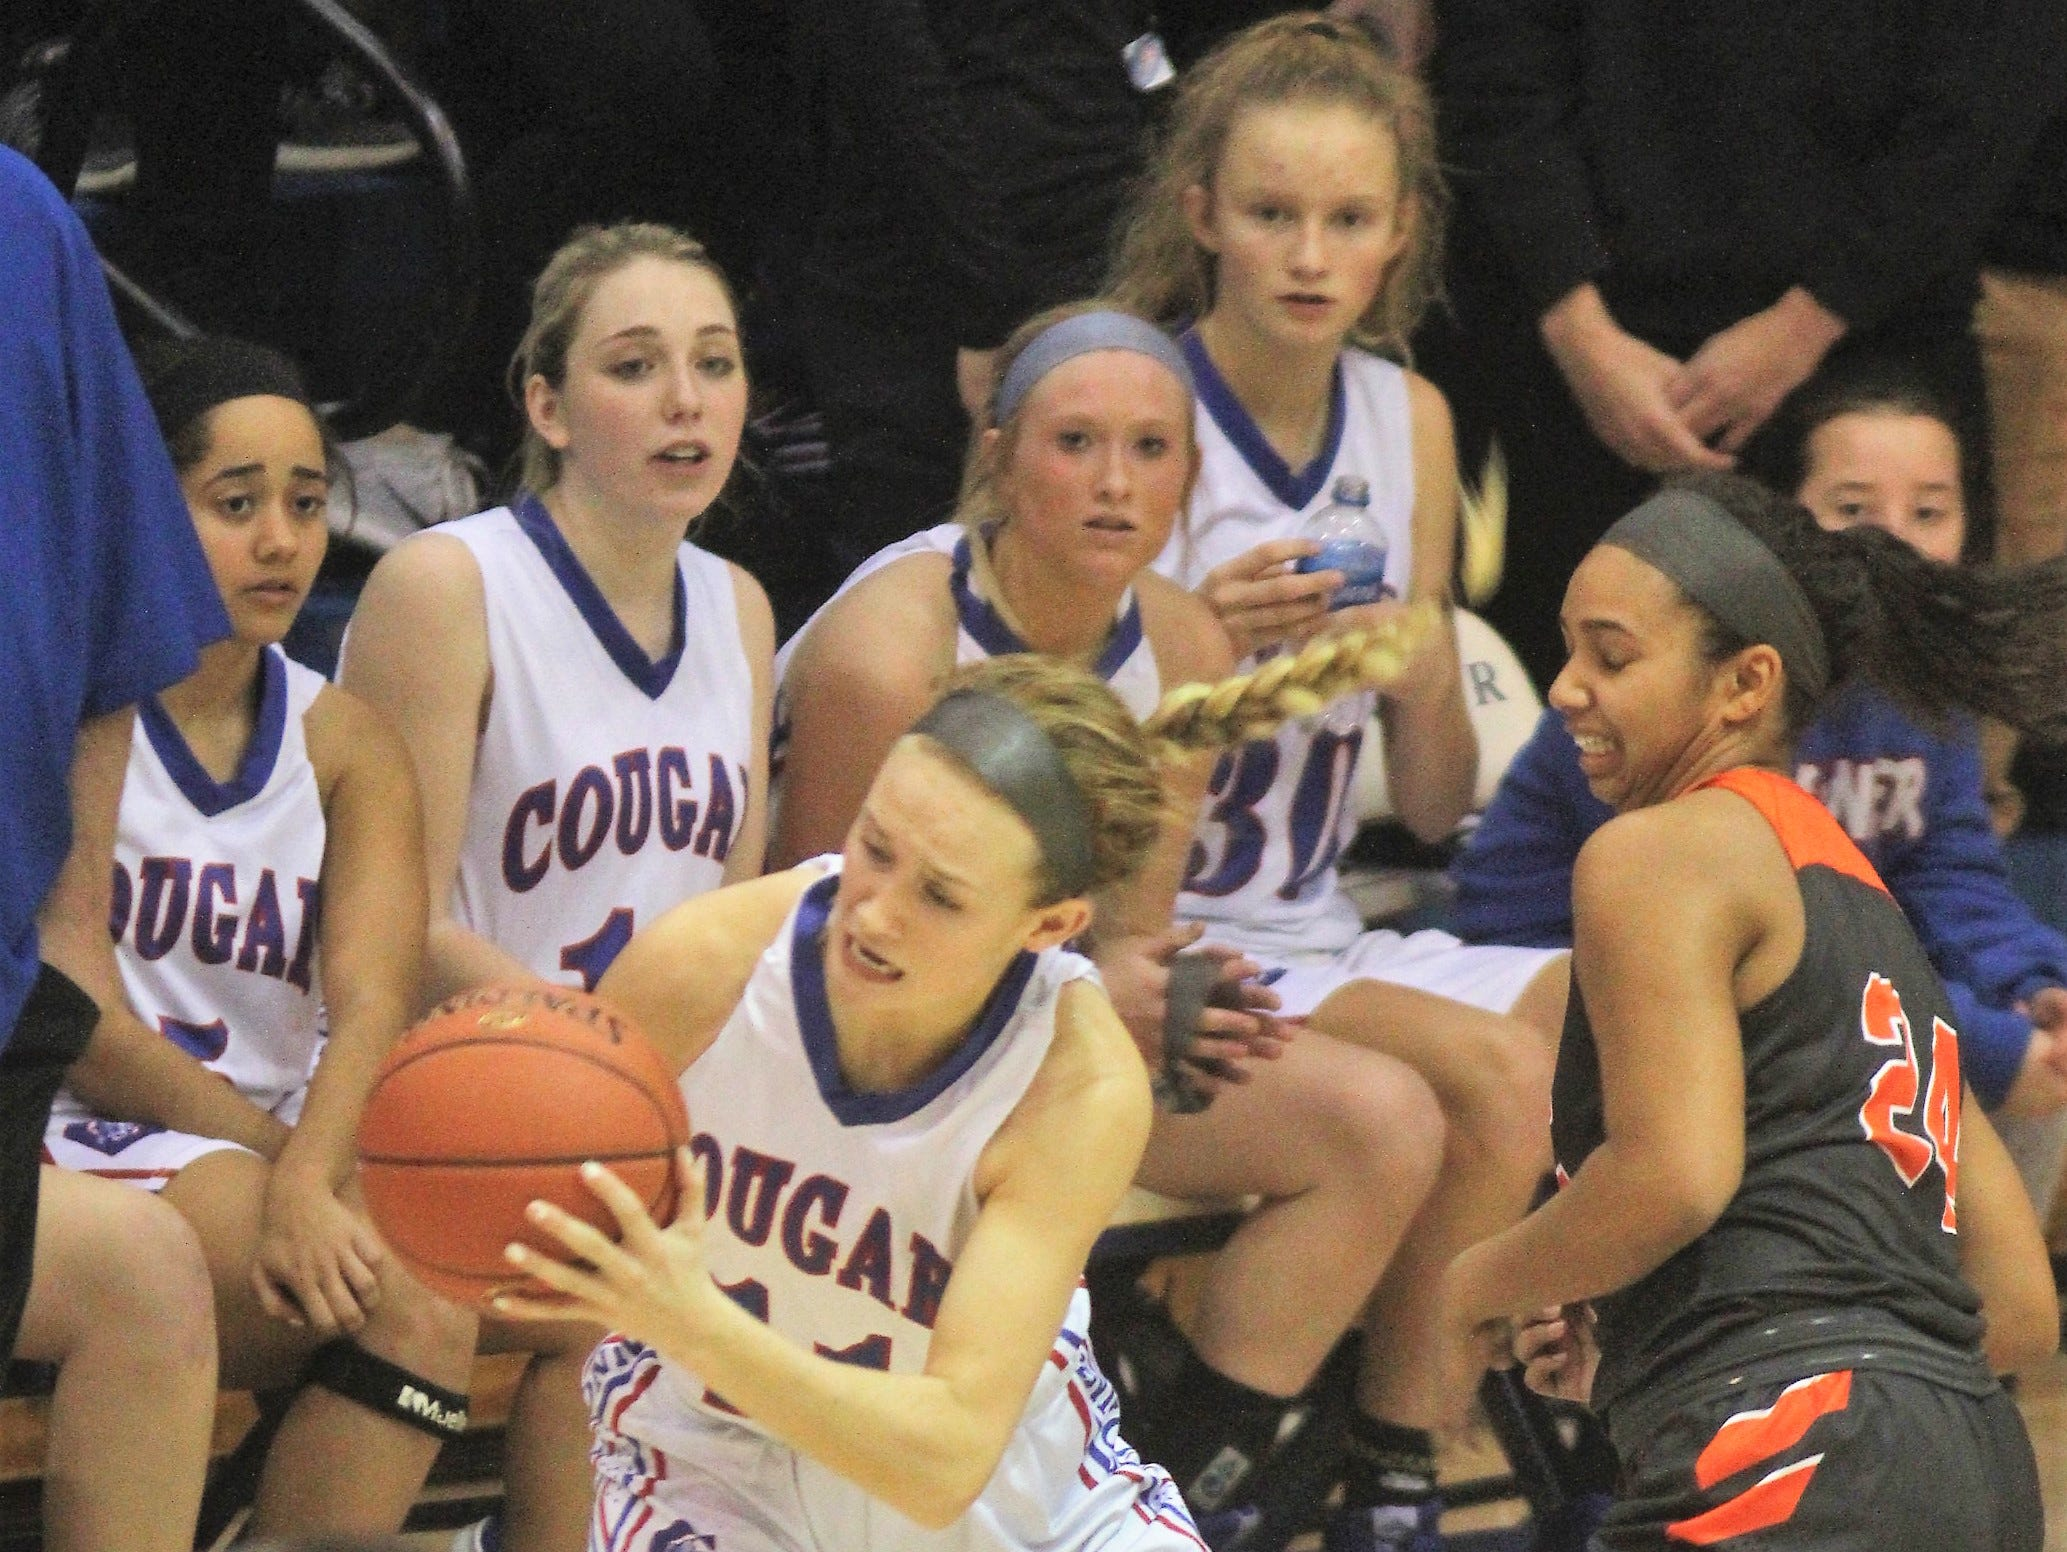 Conner senior Joy Strange gets the ball as Ryle defeated Conner 60-49 in a girls basketball district game Dec. 7, 2018 at Conner High School, Hebron KY.